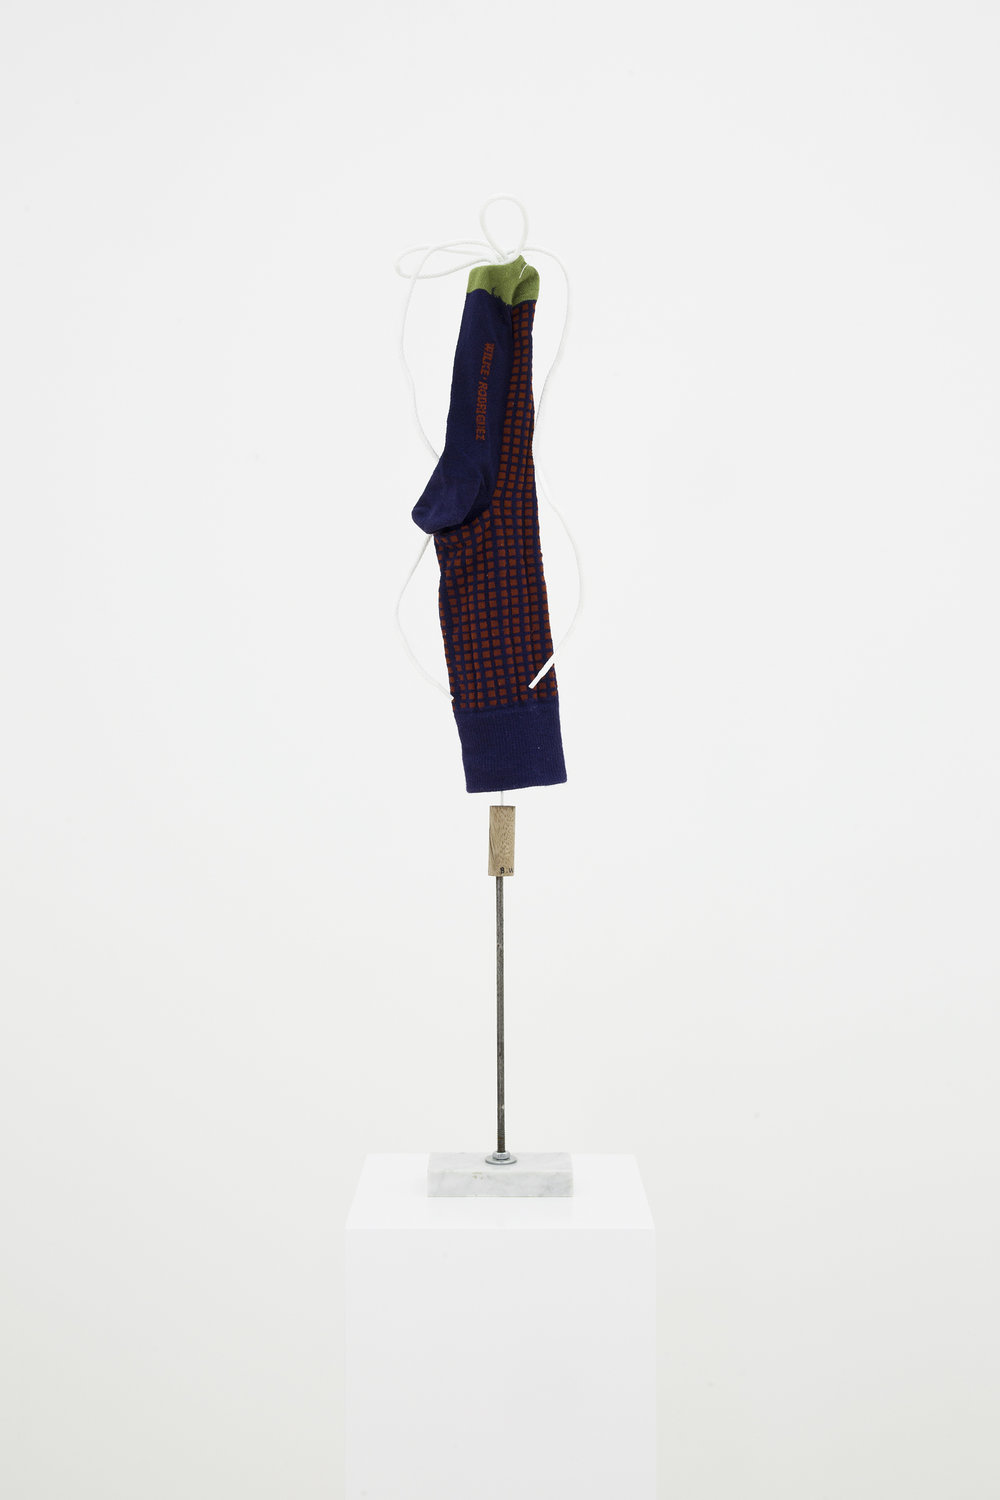 Untitled (Blue with red checkers sock), 2016. Cotton sock, shoelace, marble, wire, metal, wood, and thread, 69 x 10 x 5.25 cm (27 x 4 x 2 in)